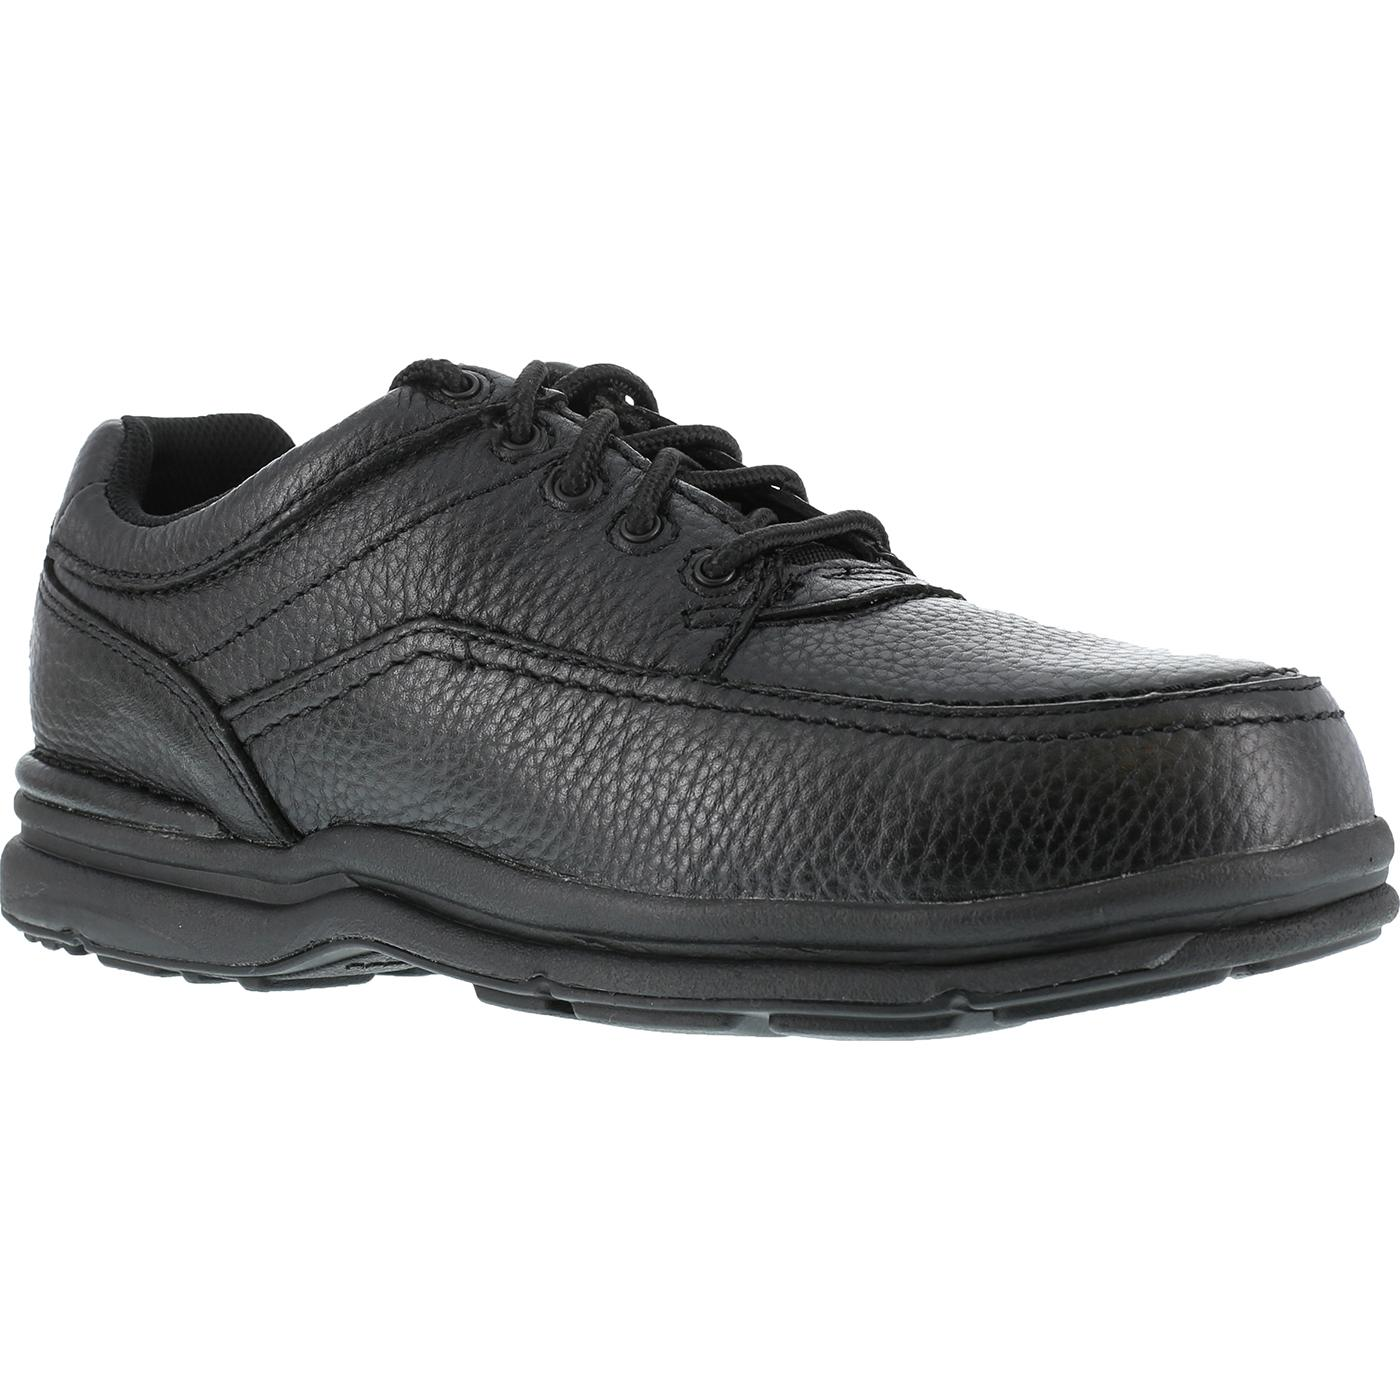 Mens Oxford Shoes By Rockport